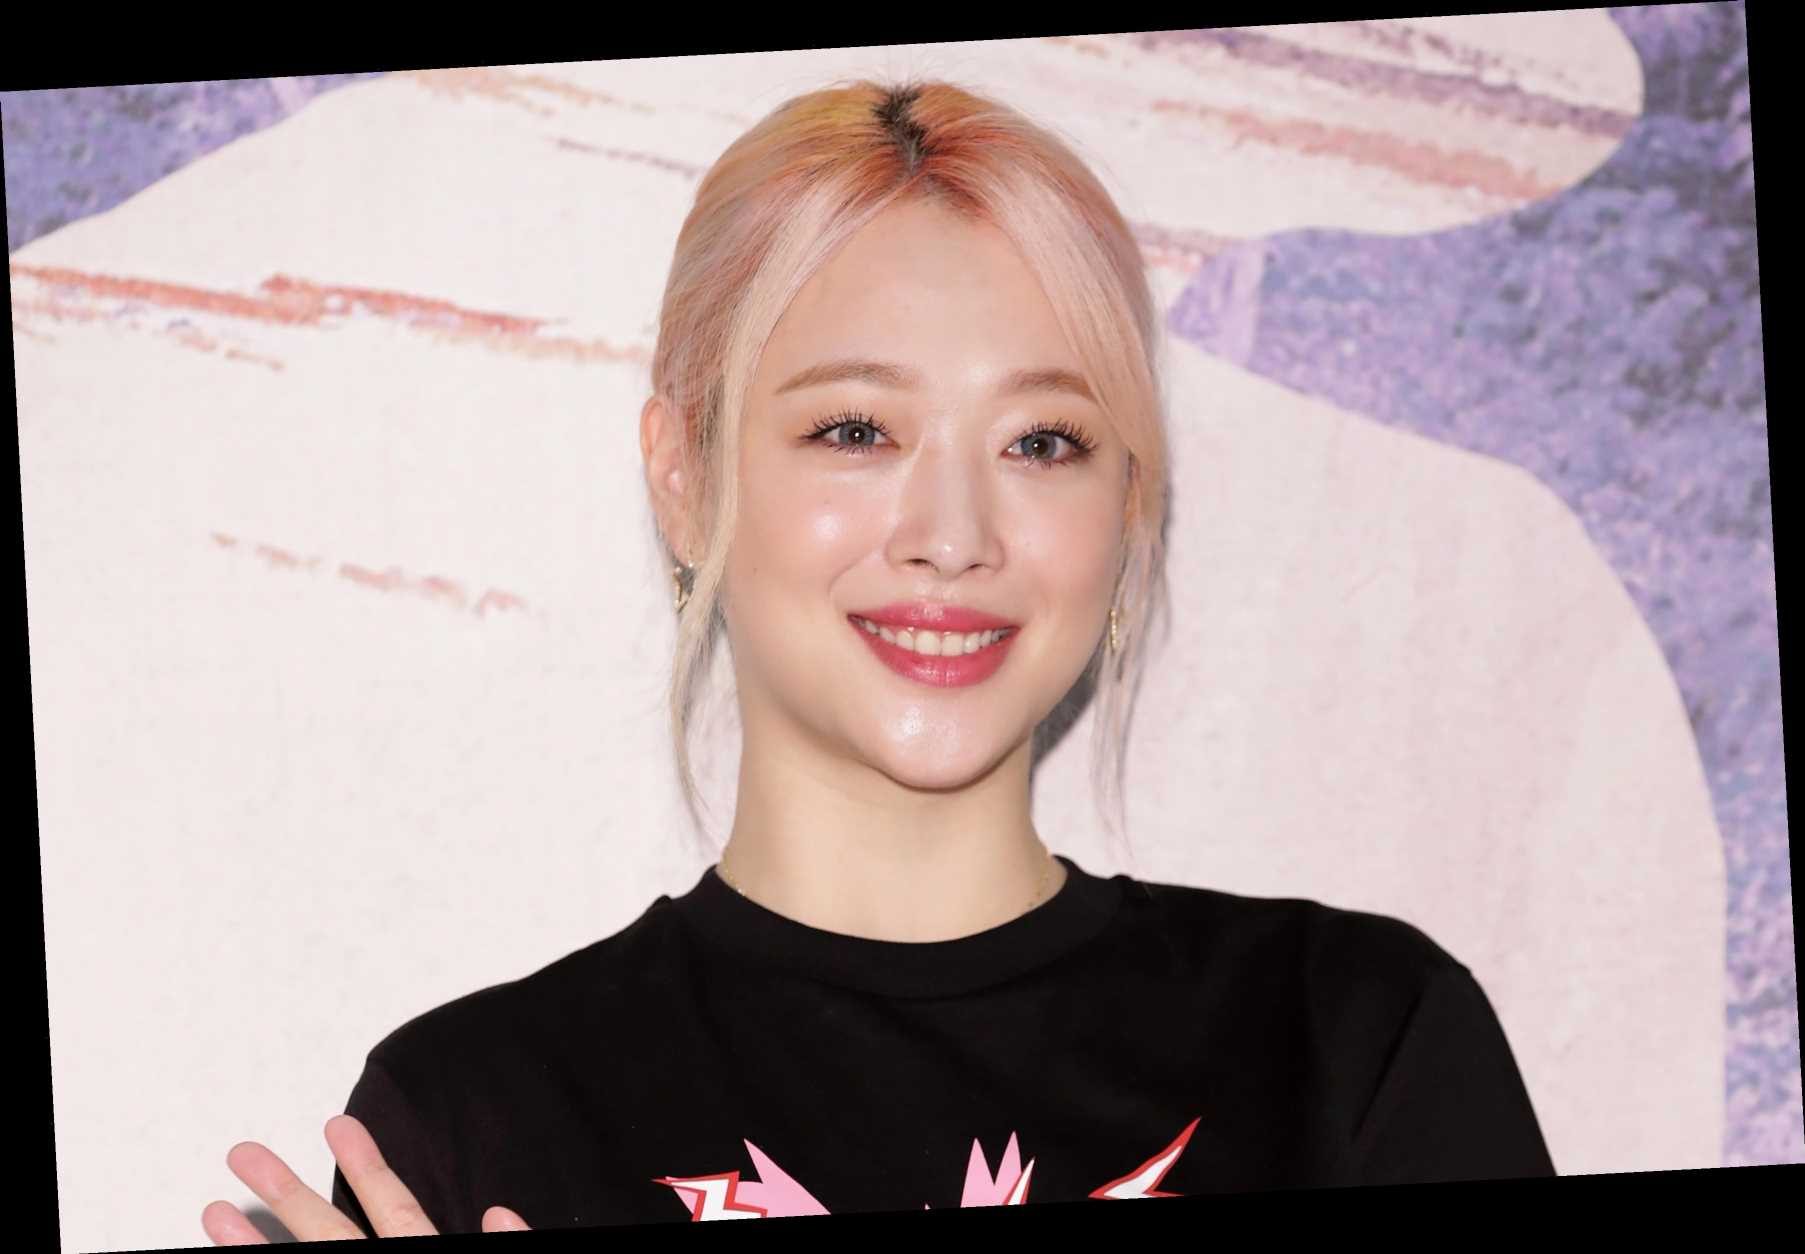 K-pop star Sulli, 25, cause of death feared to be suicide say cops after former F(x) star was trolled for accidentally showing boobs on Instagram – The Sun